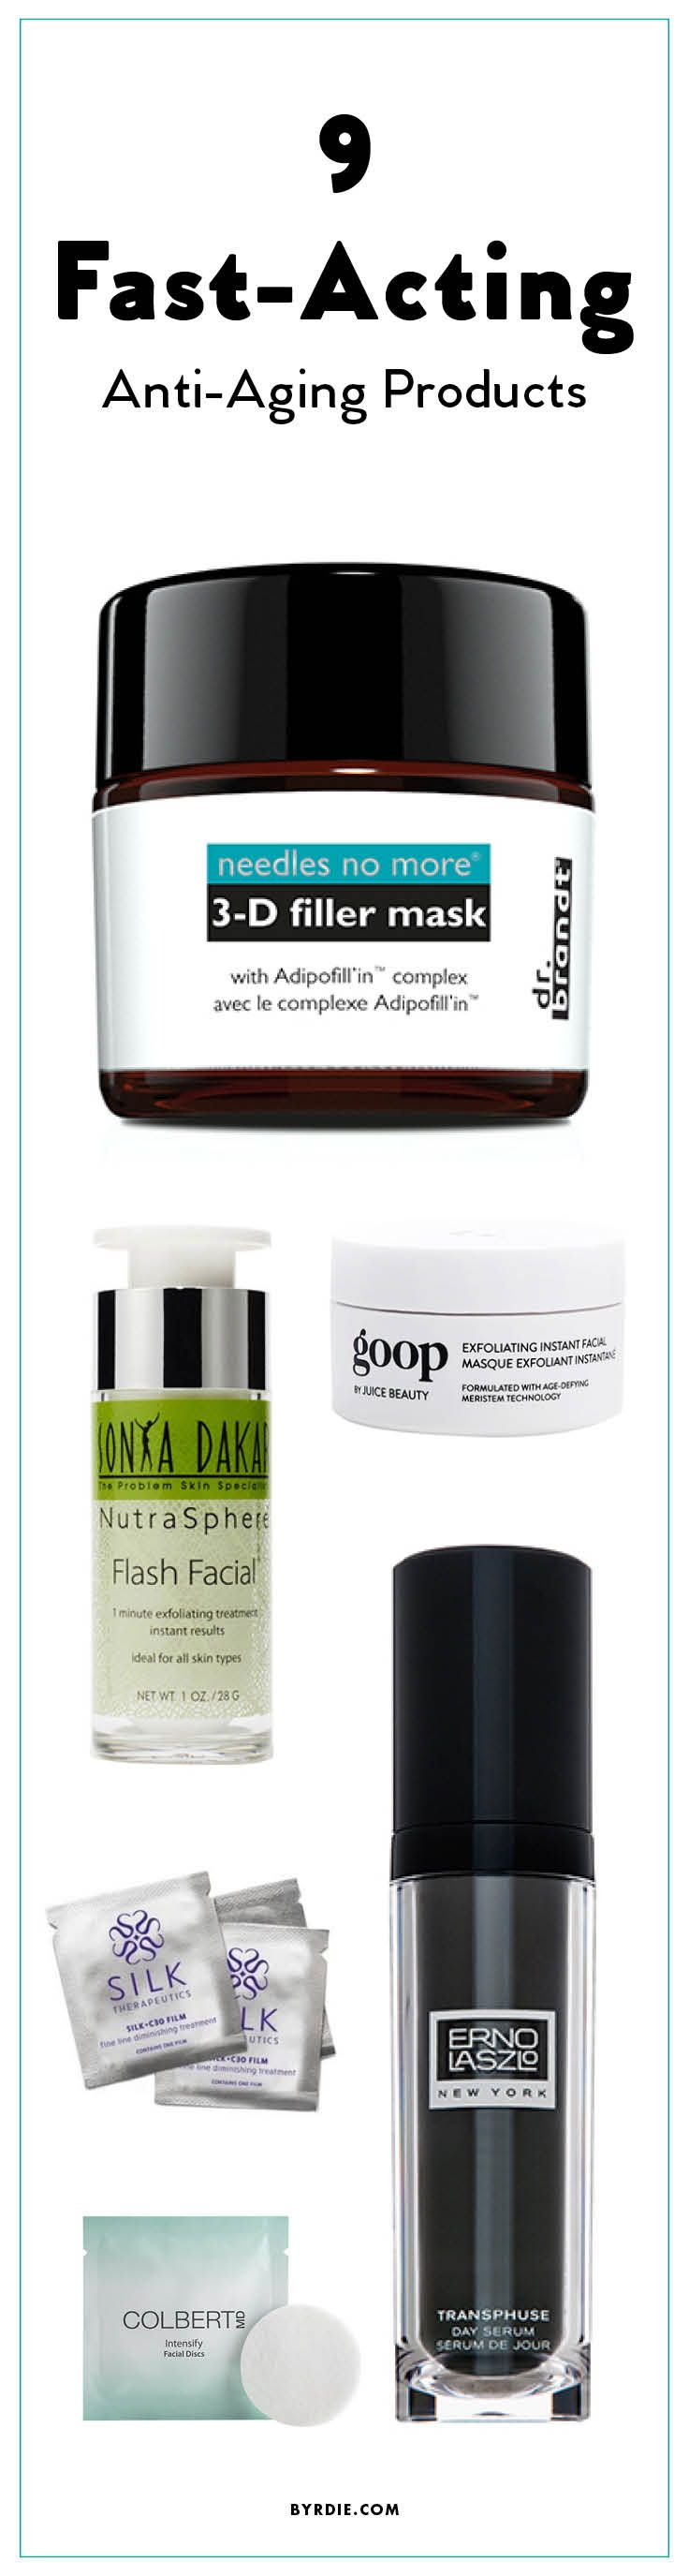 Fast-acting anti-aging products